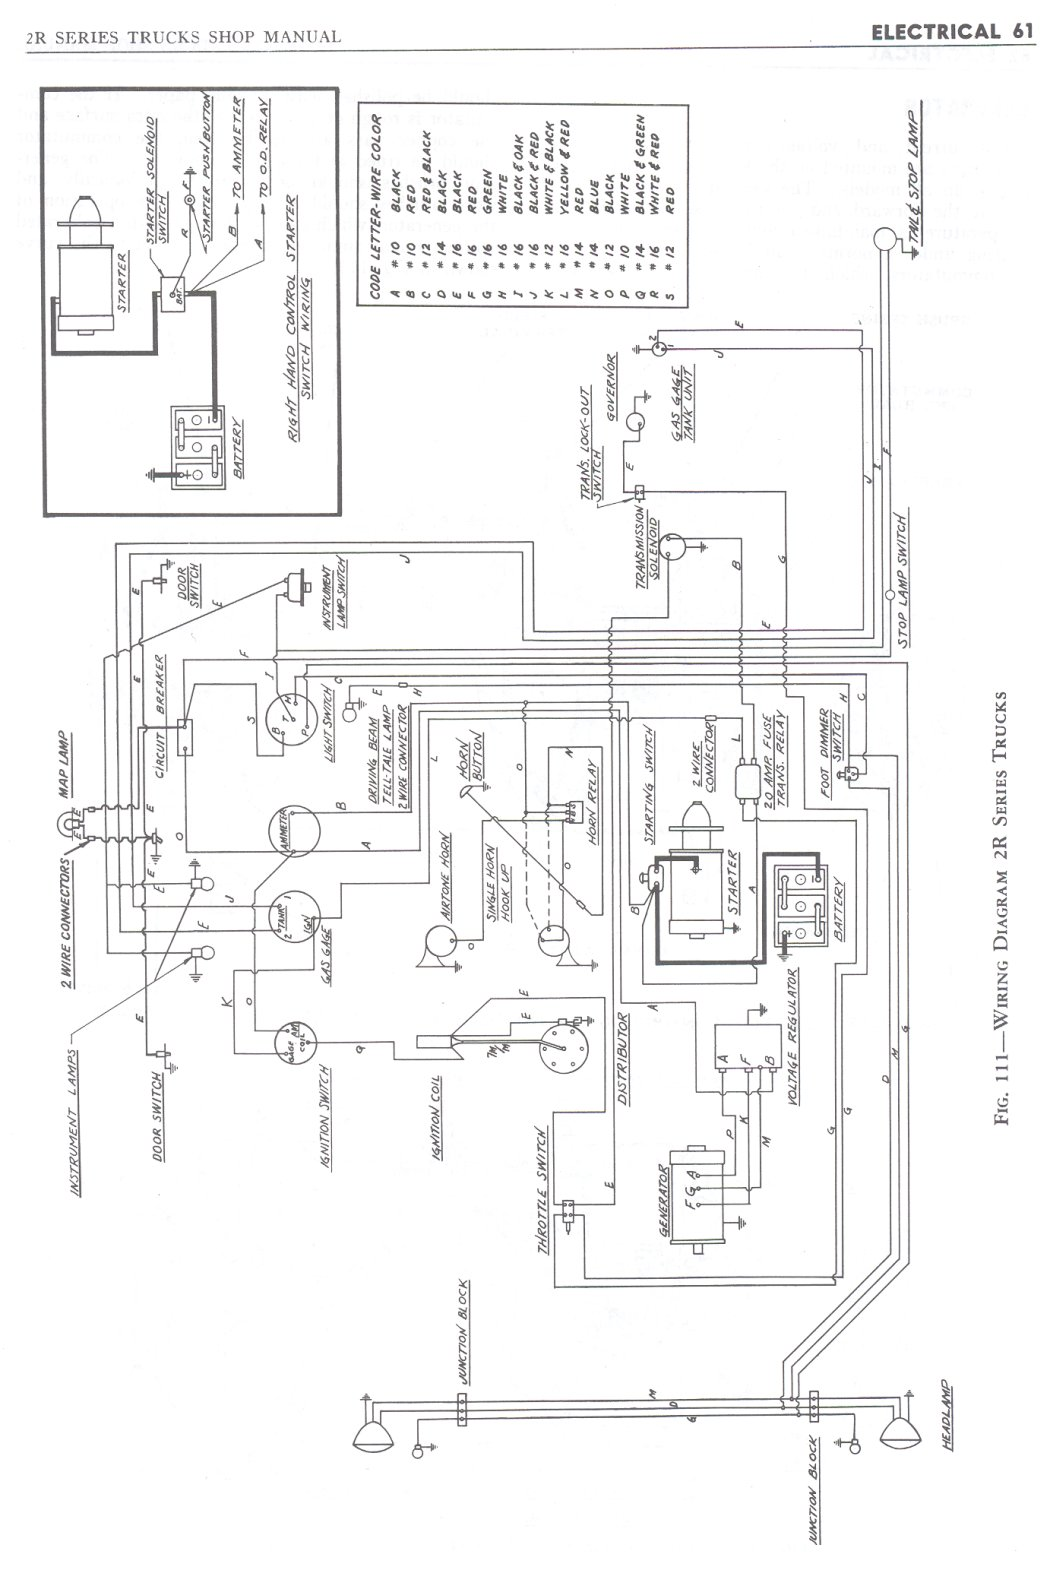 Electrical Wiring Diagram For 1941 1946 Studebaker President